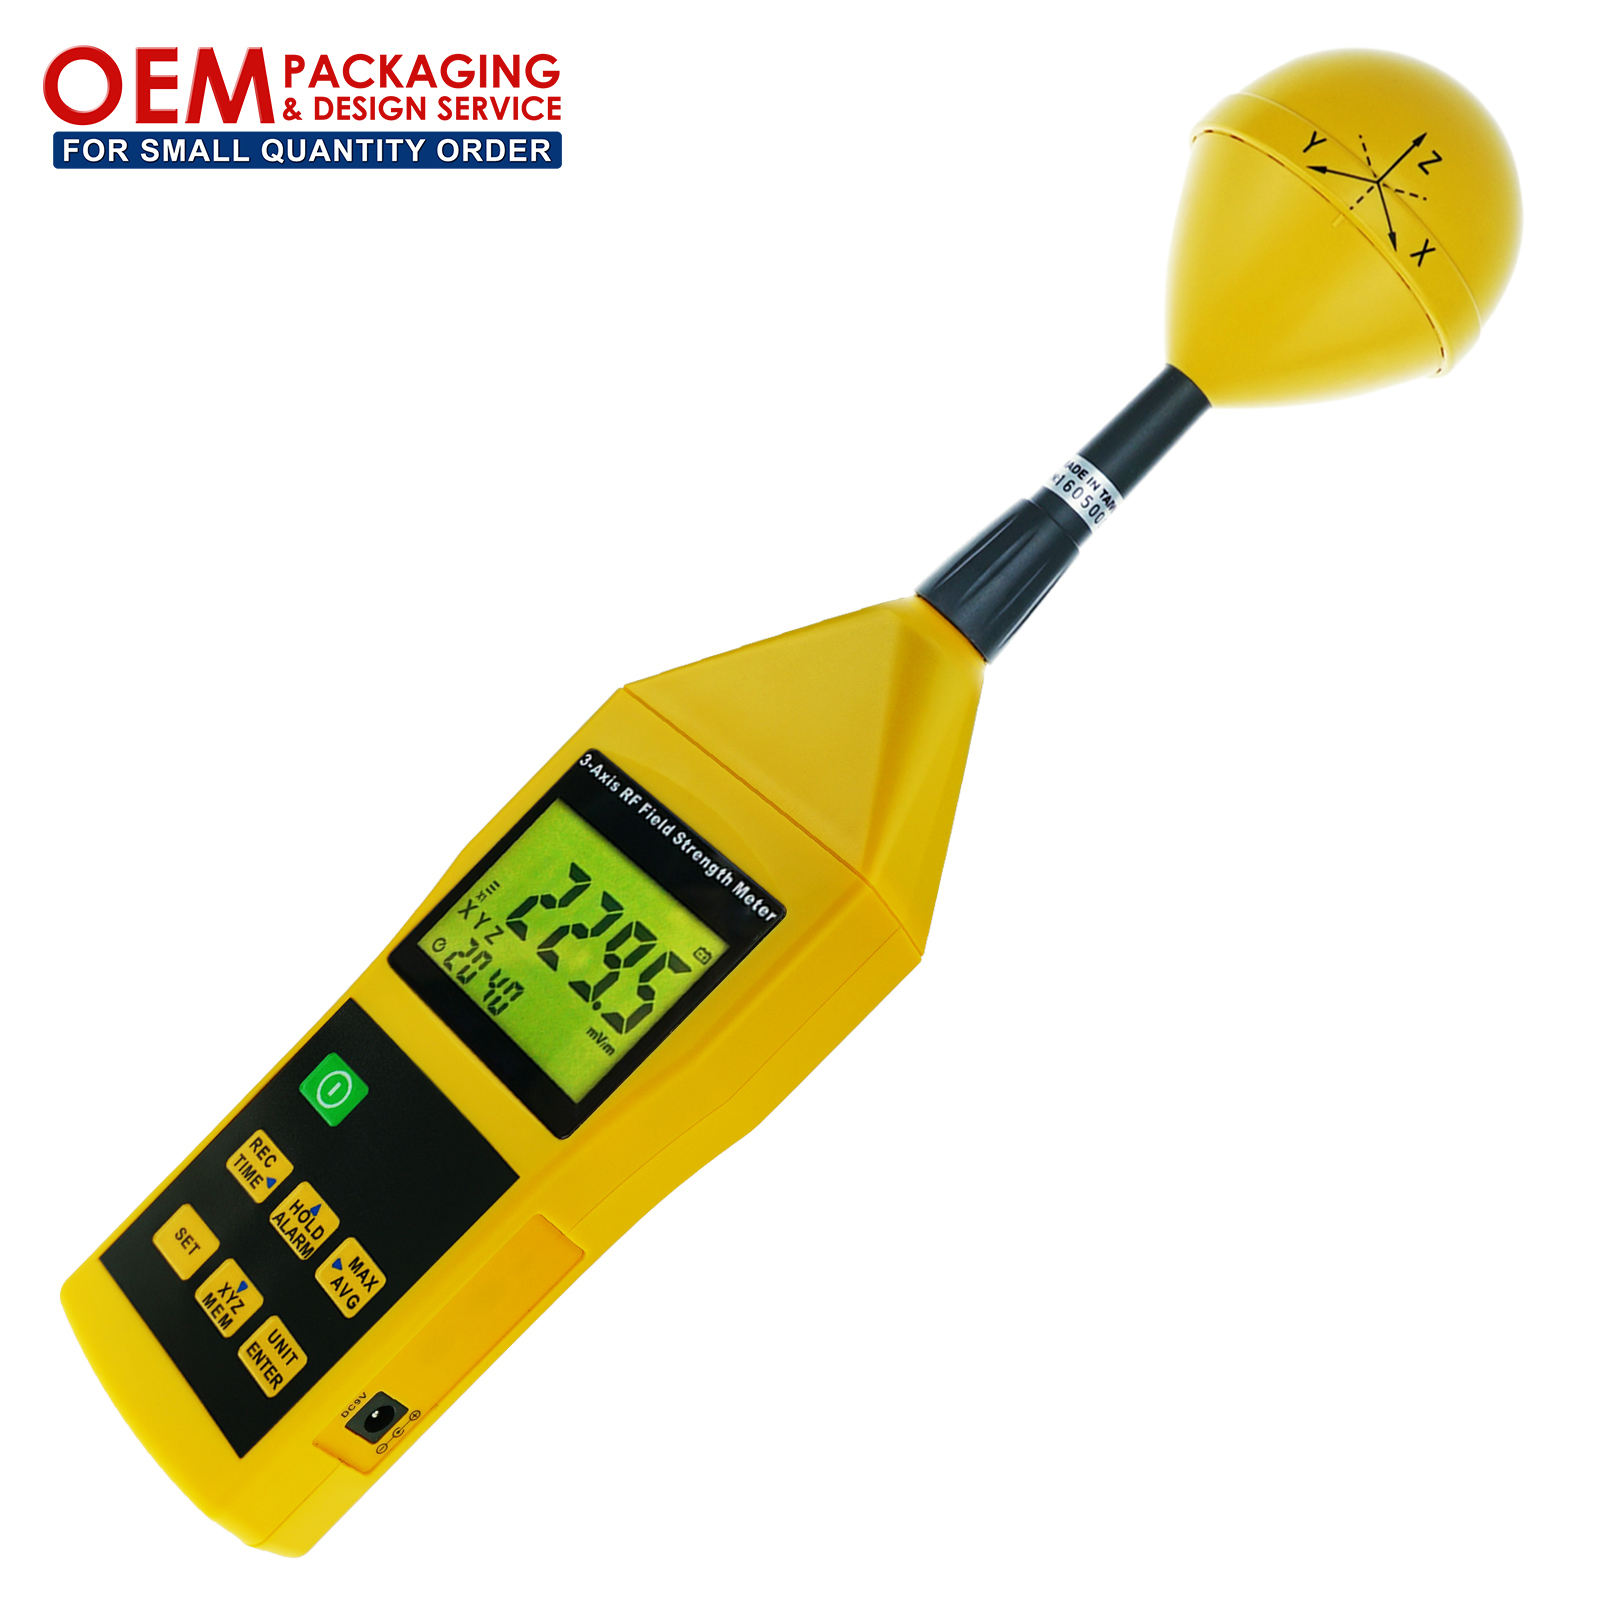 3-Axis RF Meter Electromagnetic Radiation Tester Detector 10MHz to 8GHz w/ Alarm and Tripod Mounting (OEM Packaging Available)